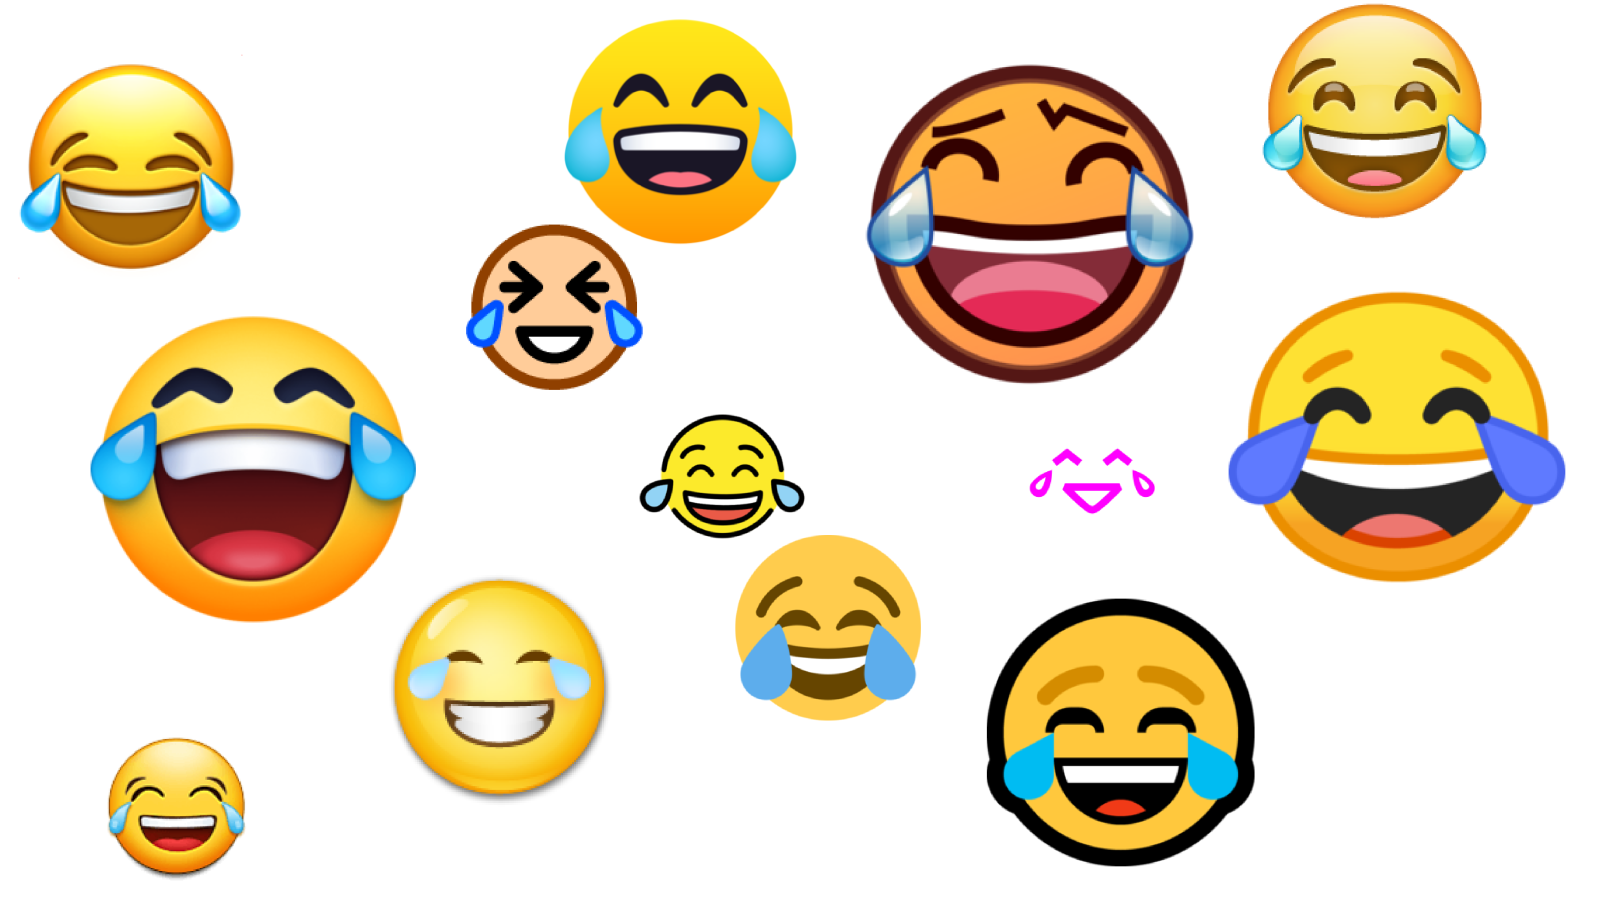 qz.com - Anne Quito - Why we can't stop using the 'face with tears of joy' emoji